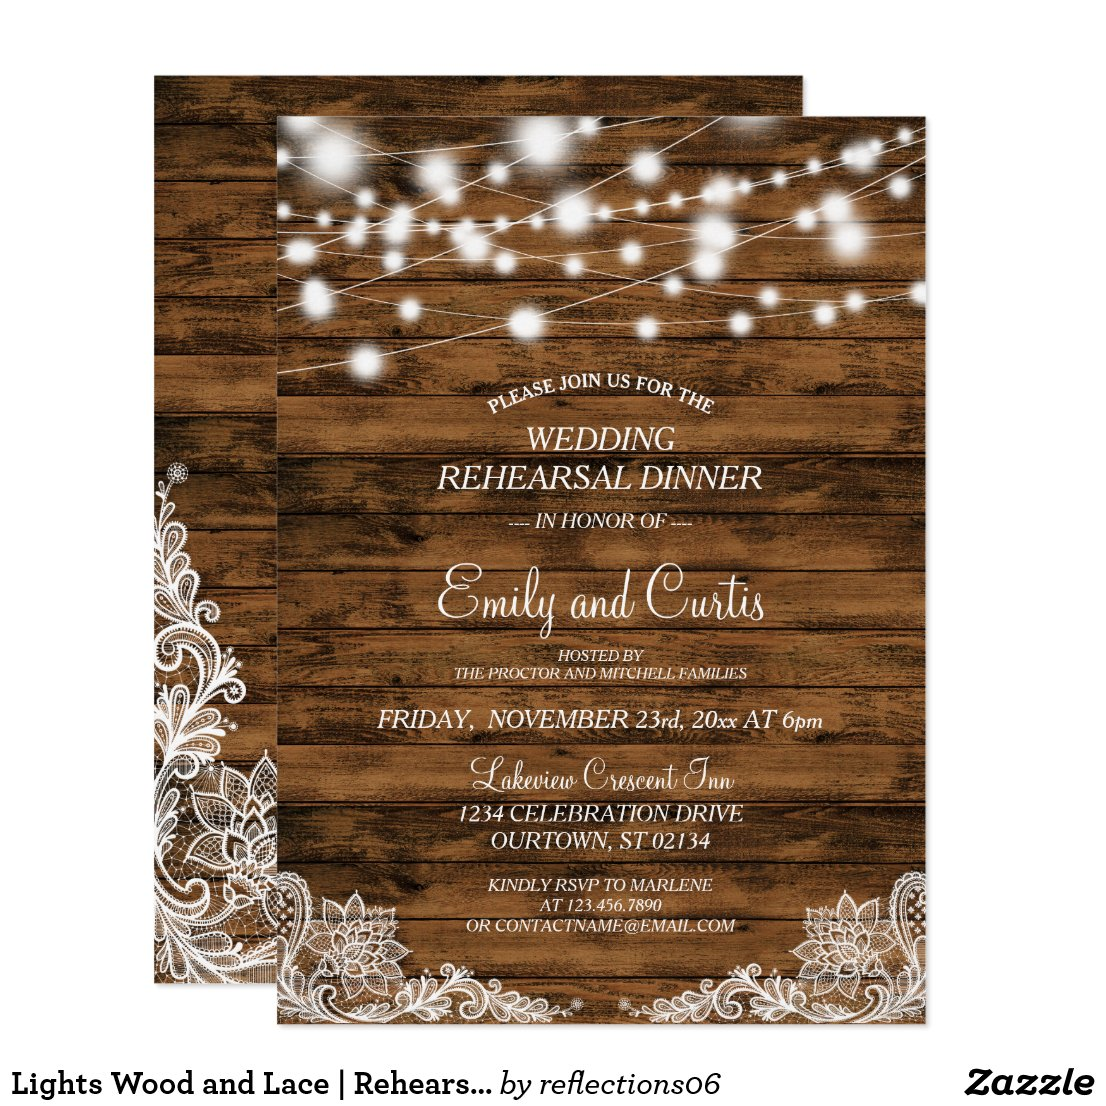 Lights Wood and Lace | Rehearsal Dinner Invitation